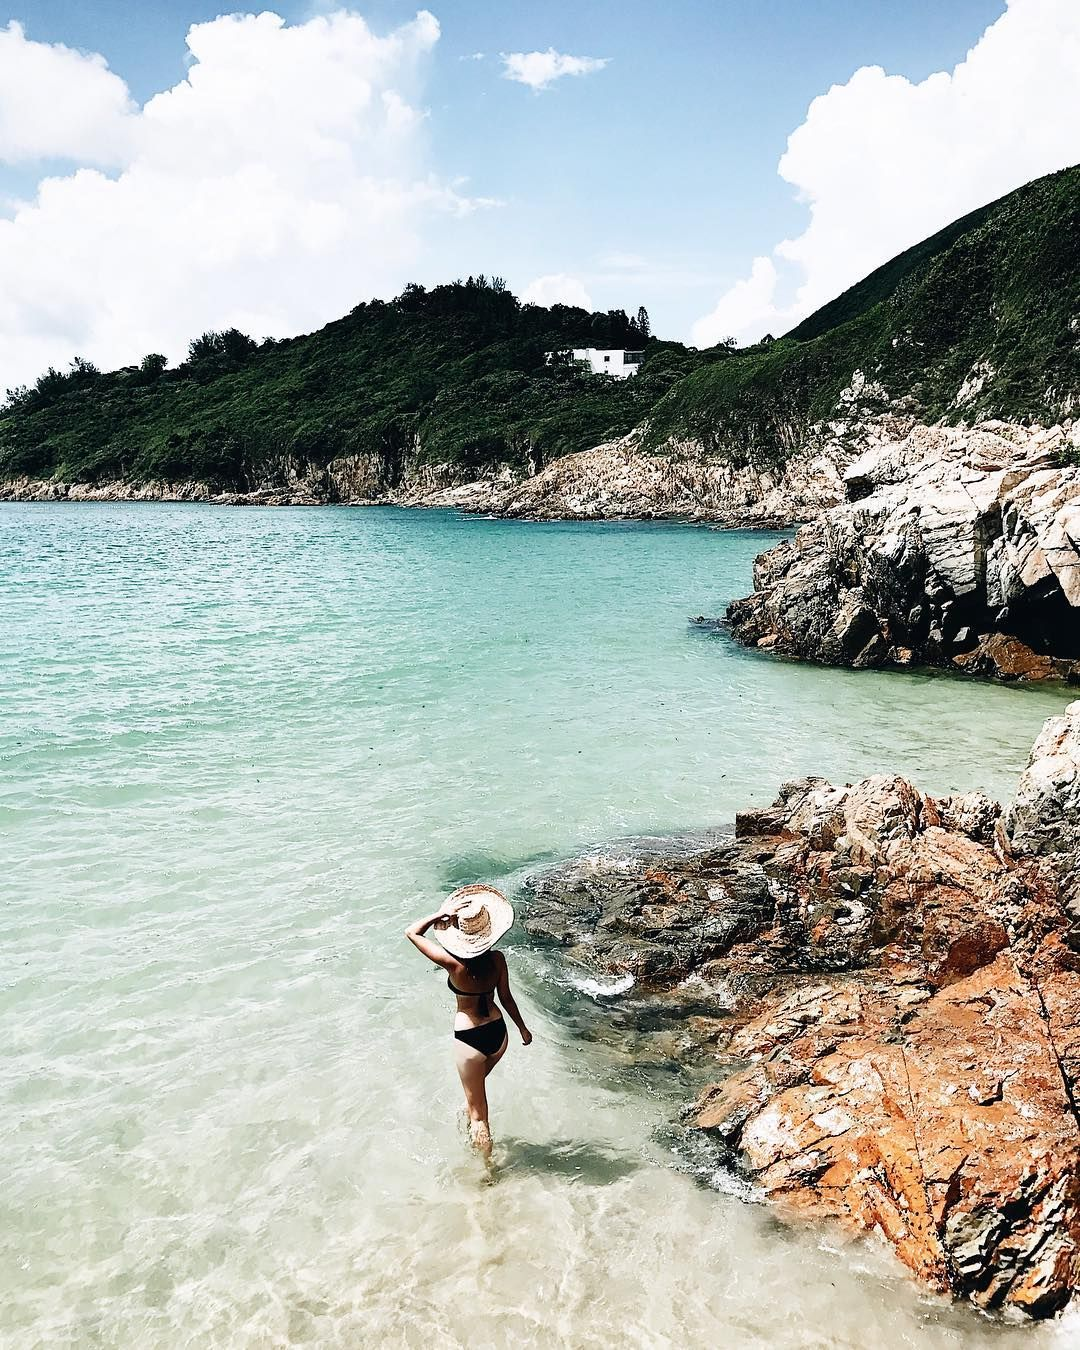 The Most Beautiful Beaches To Visit In Hong Kong